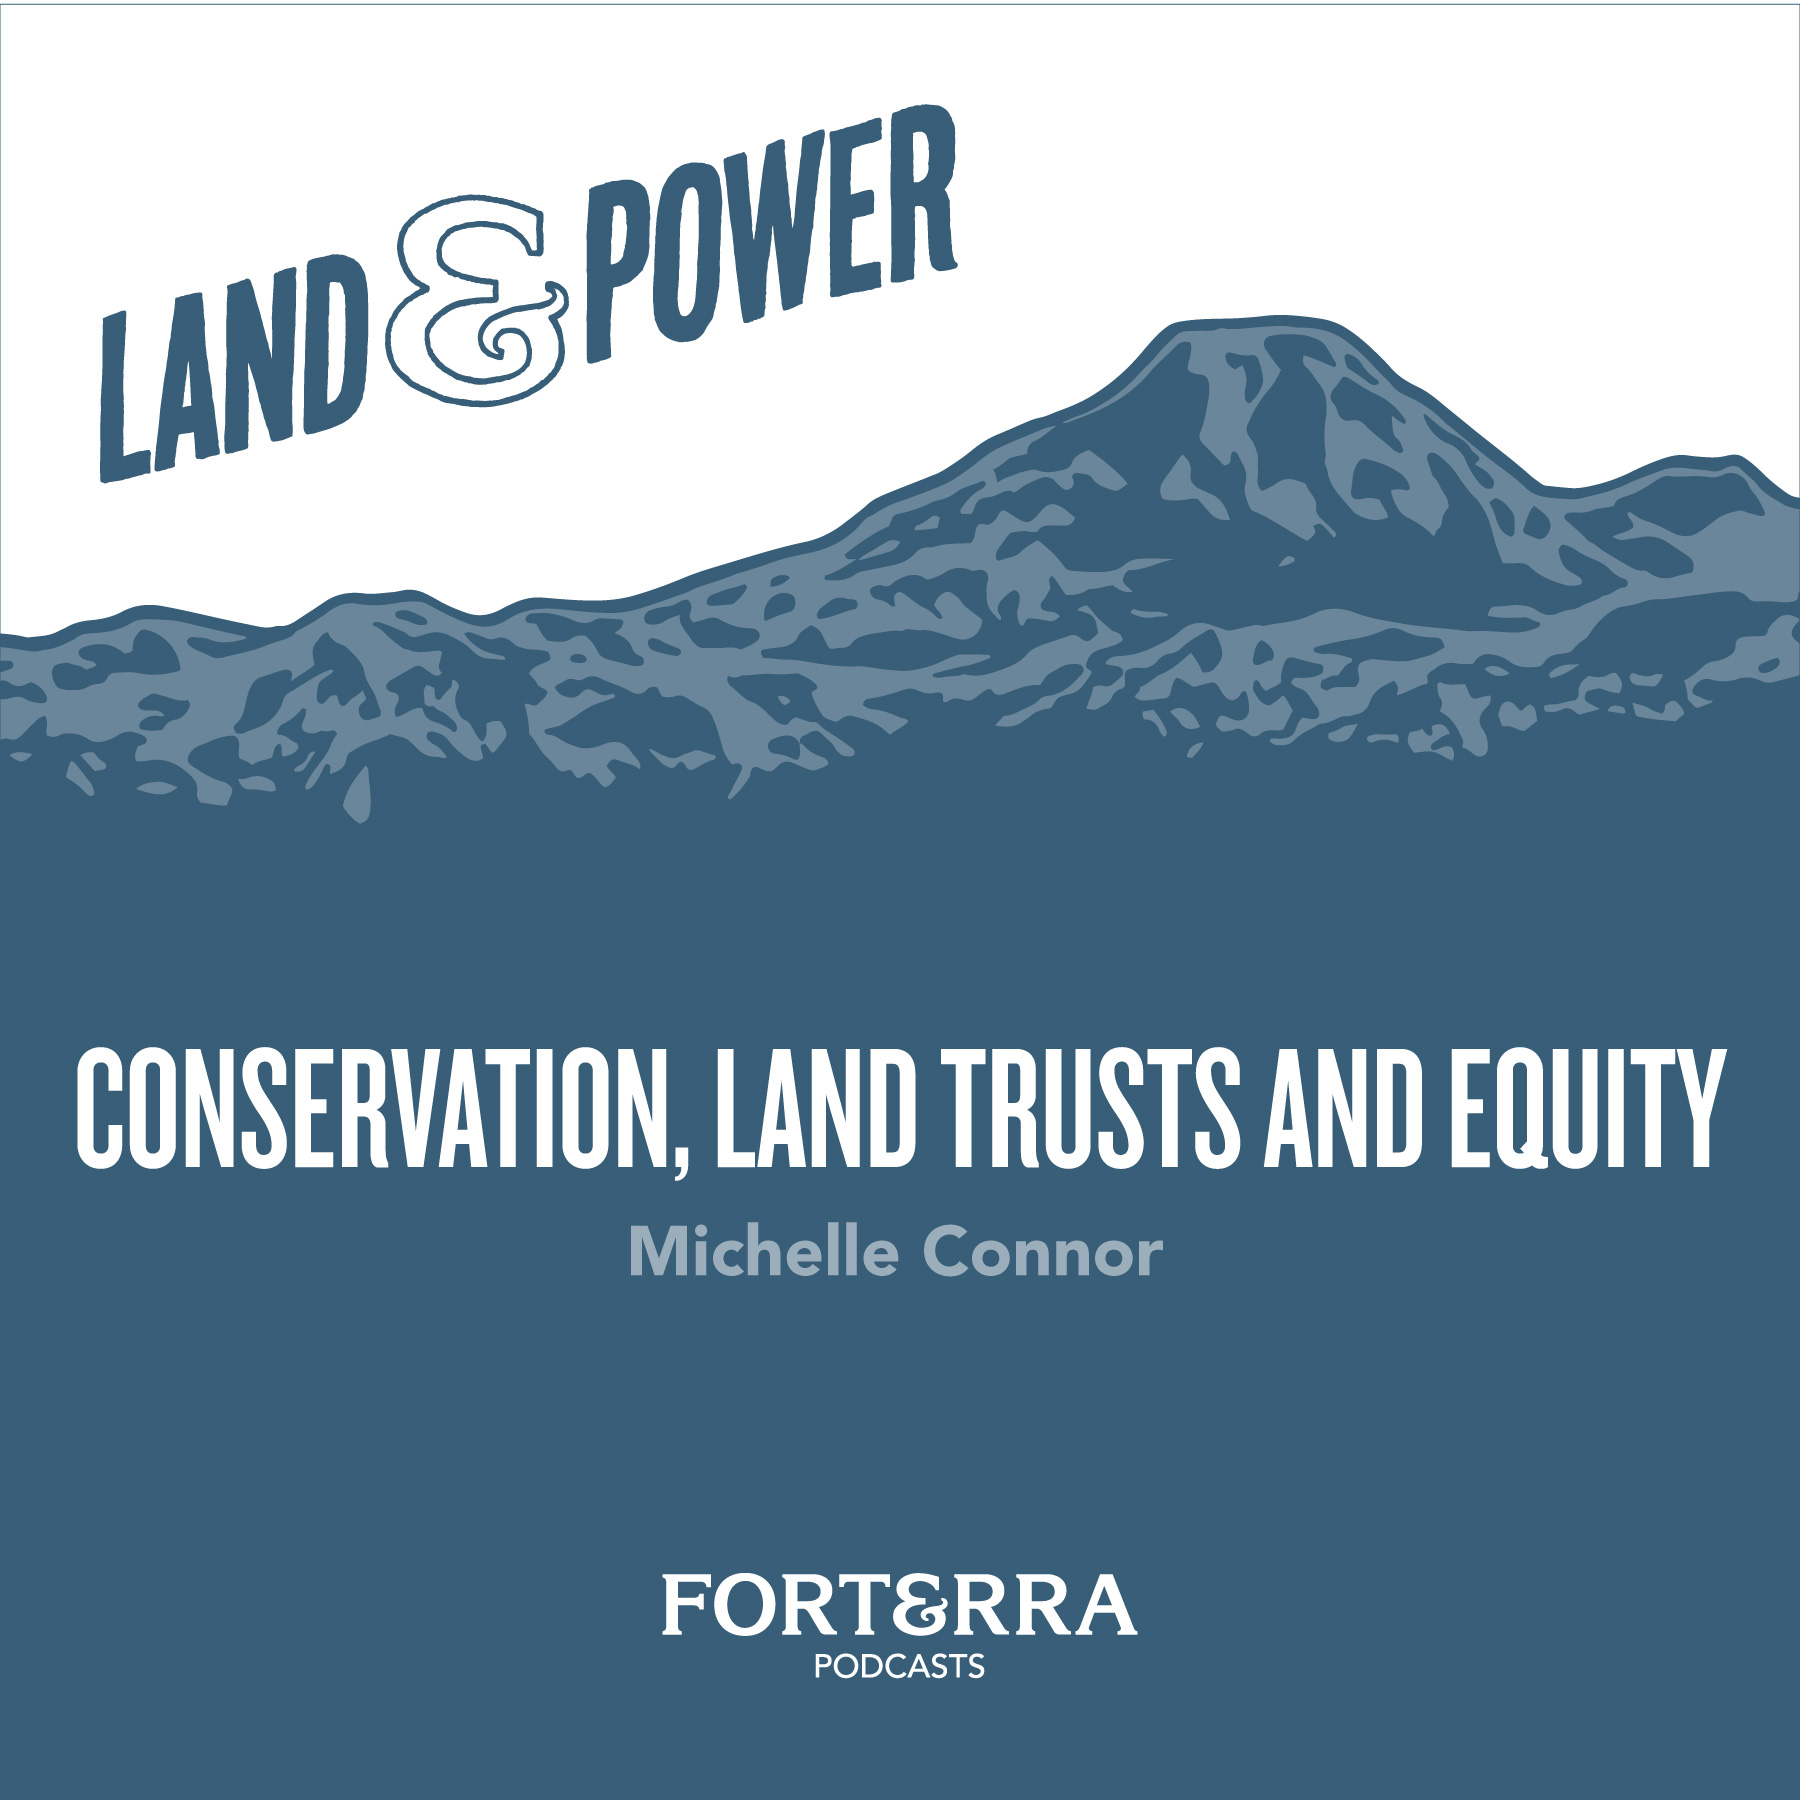 Land & Power: Conservation, Land Trusts, and Equity with Michelle Connor